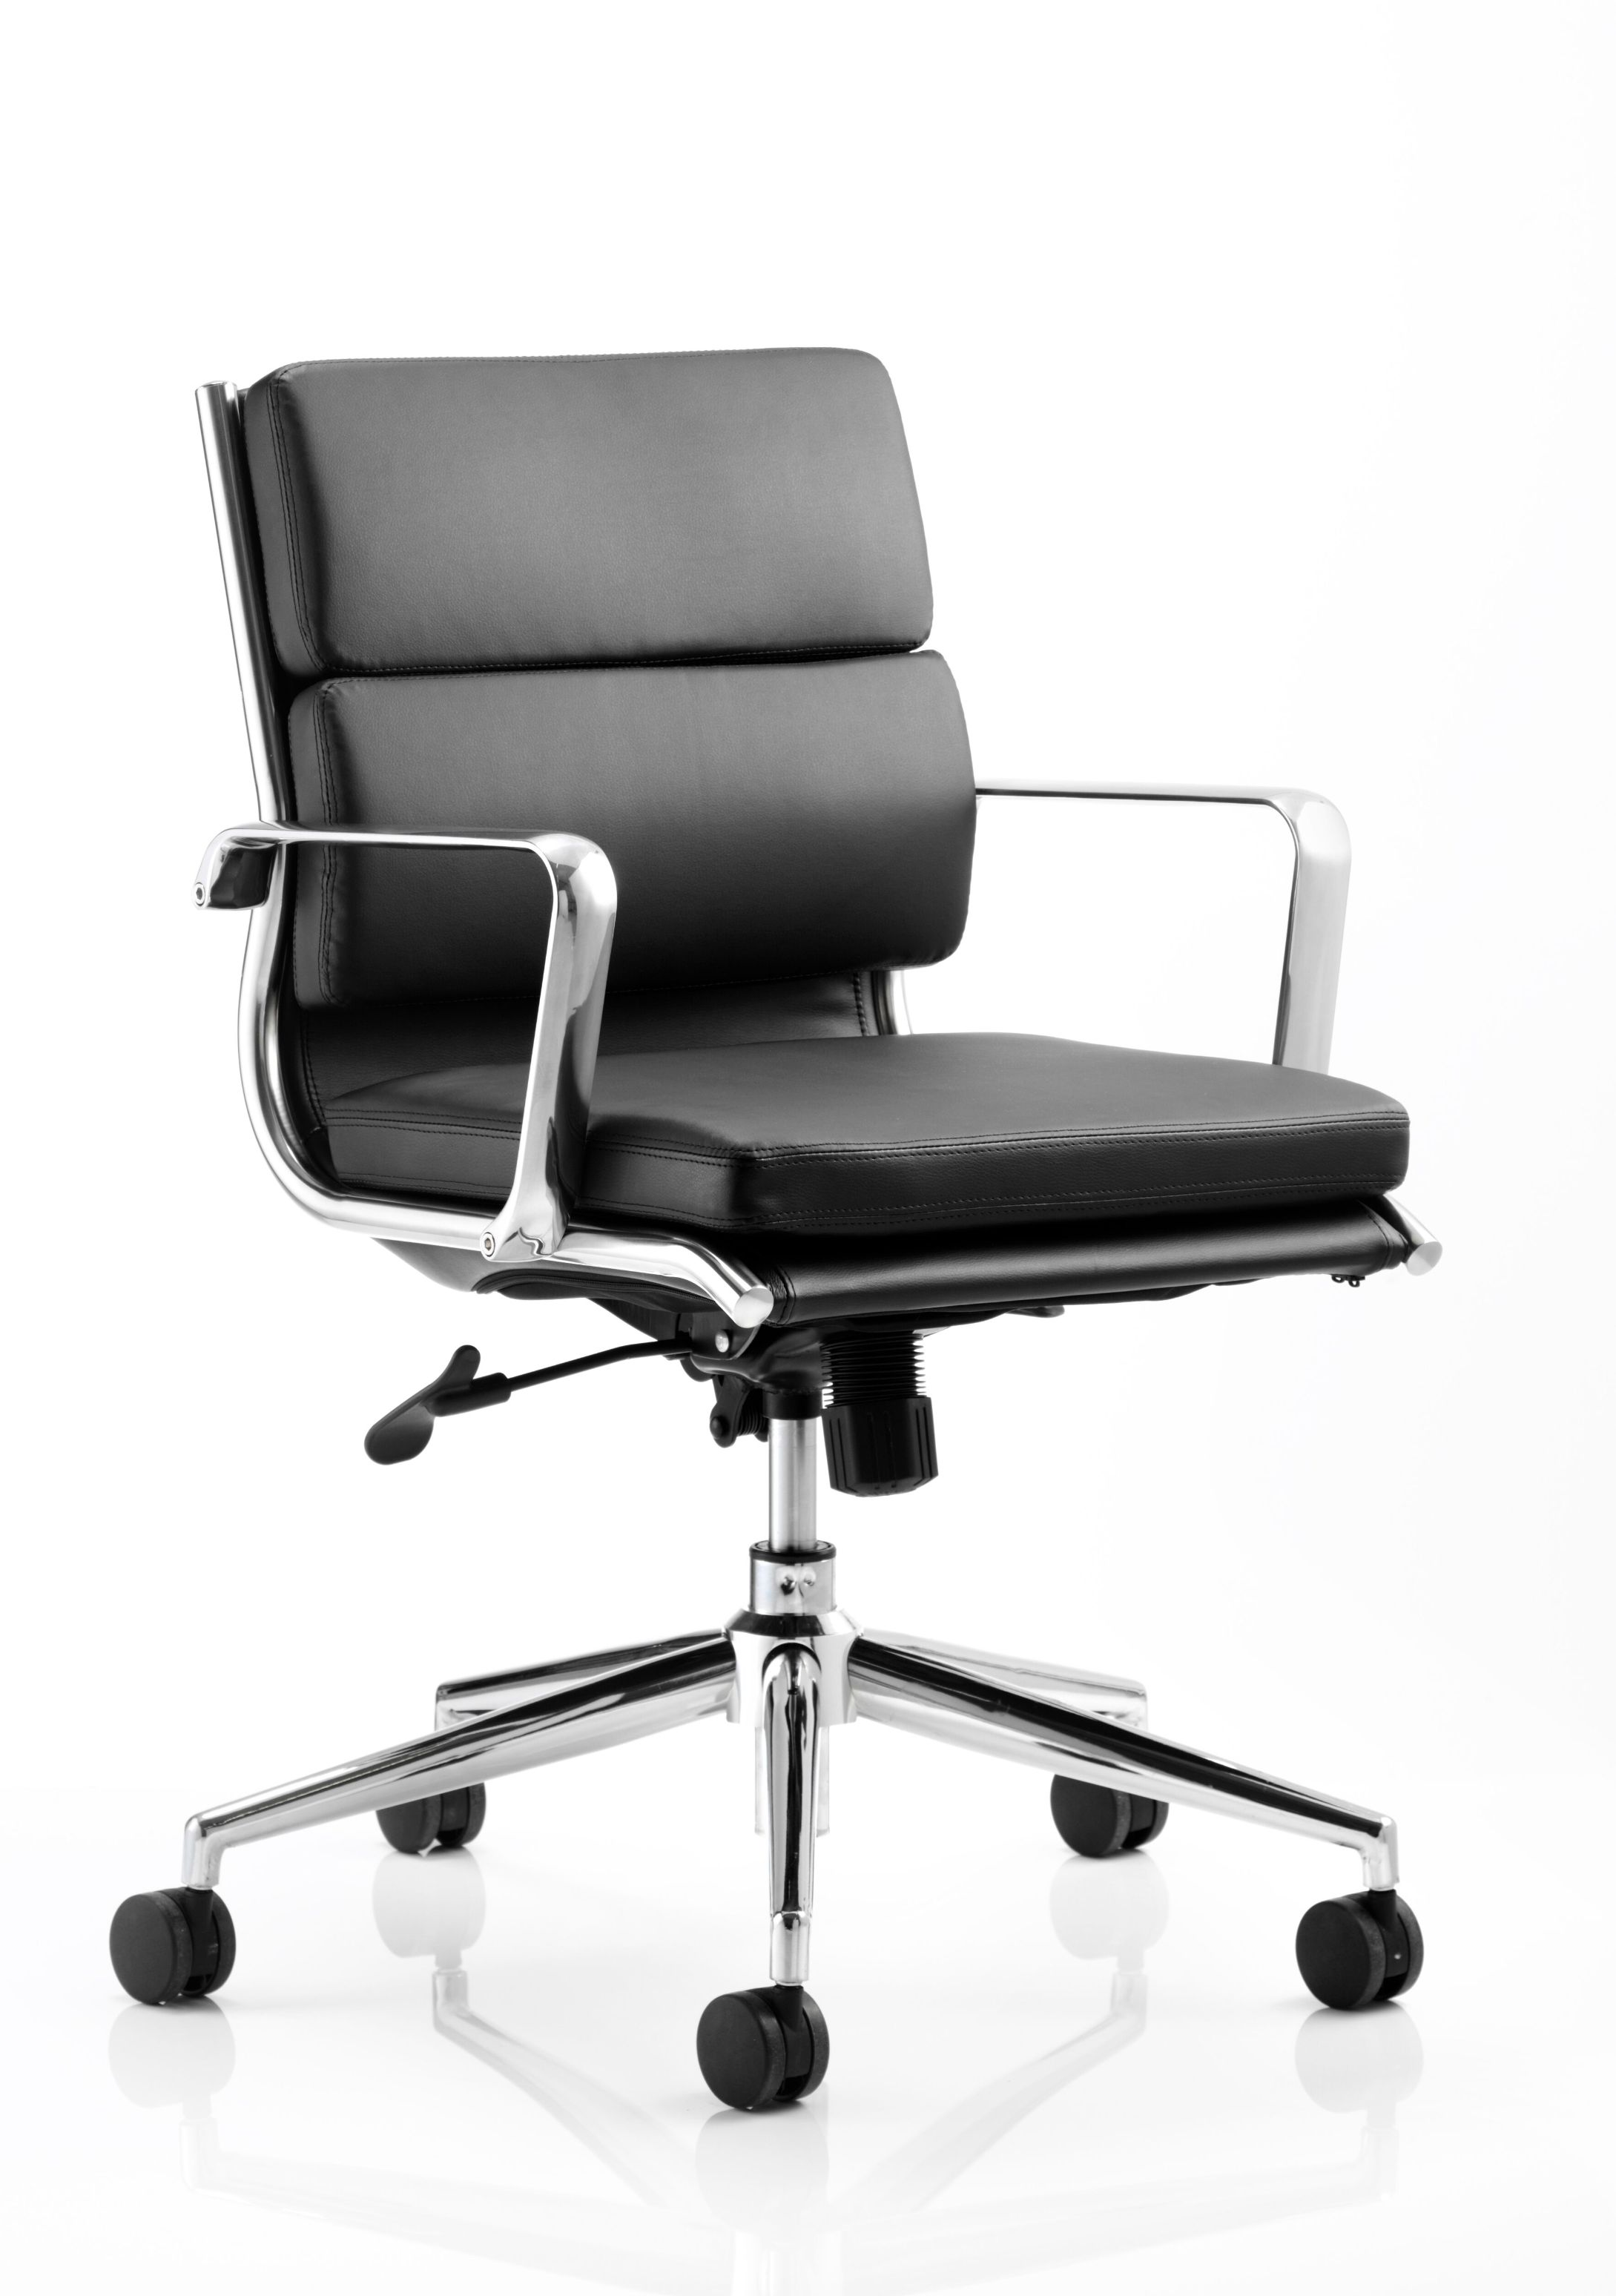 Black Leather Office Chairs. Office Chairs UK. Office Seating